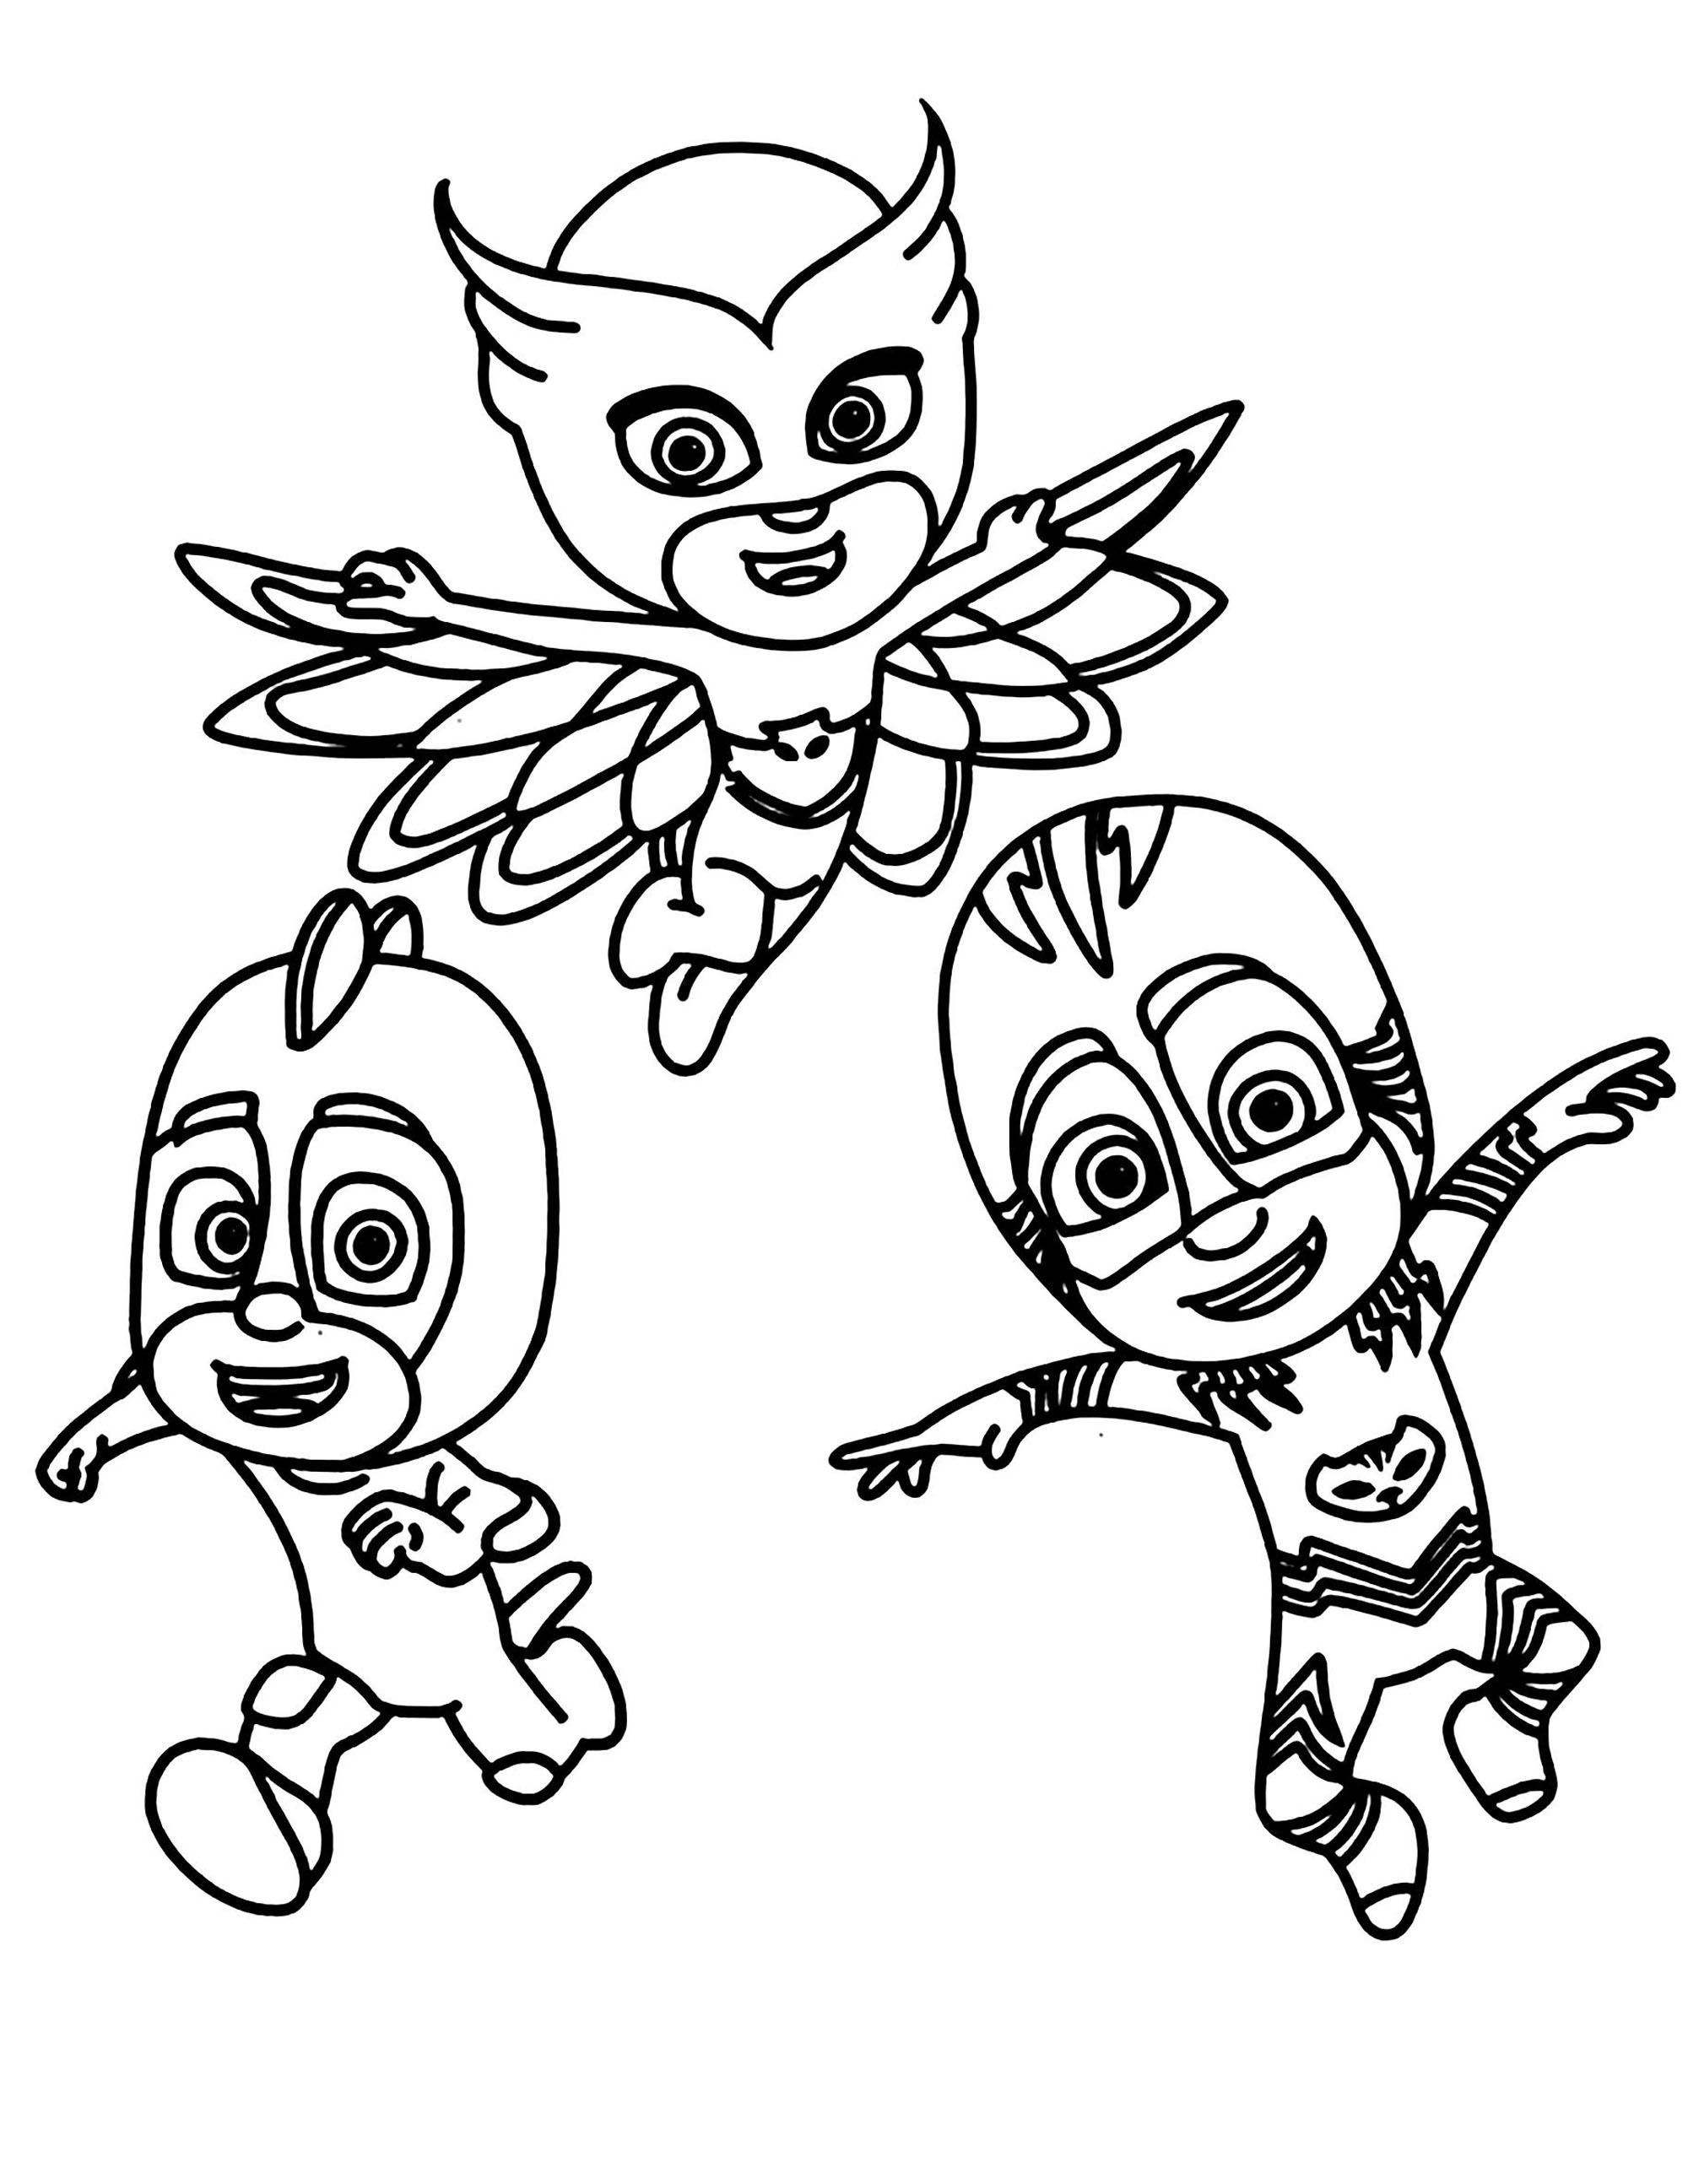 PJ Masks coloring page to print and color